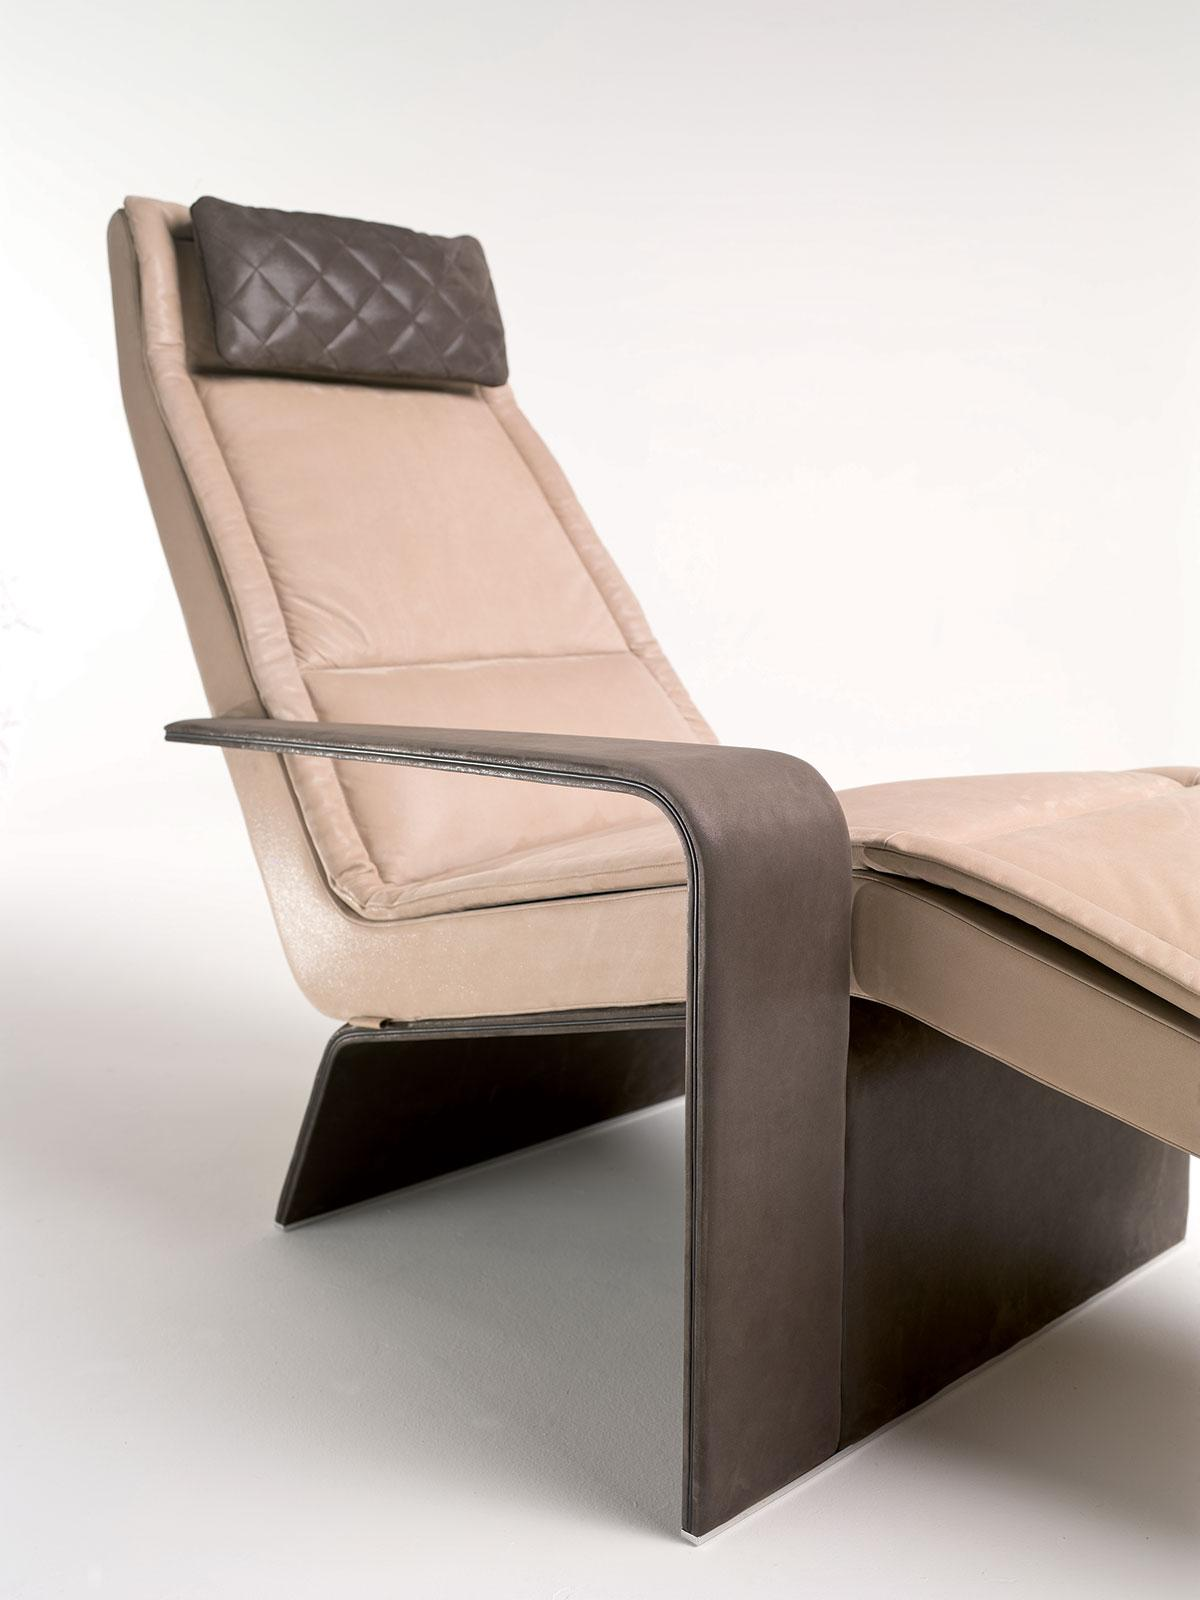 Ala chaise longue imbottita con bracciolo - Italy Dream Design